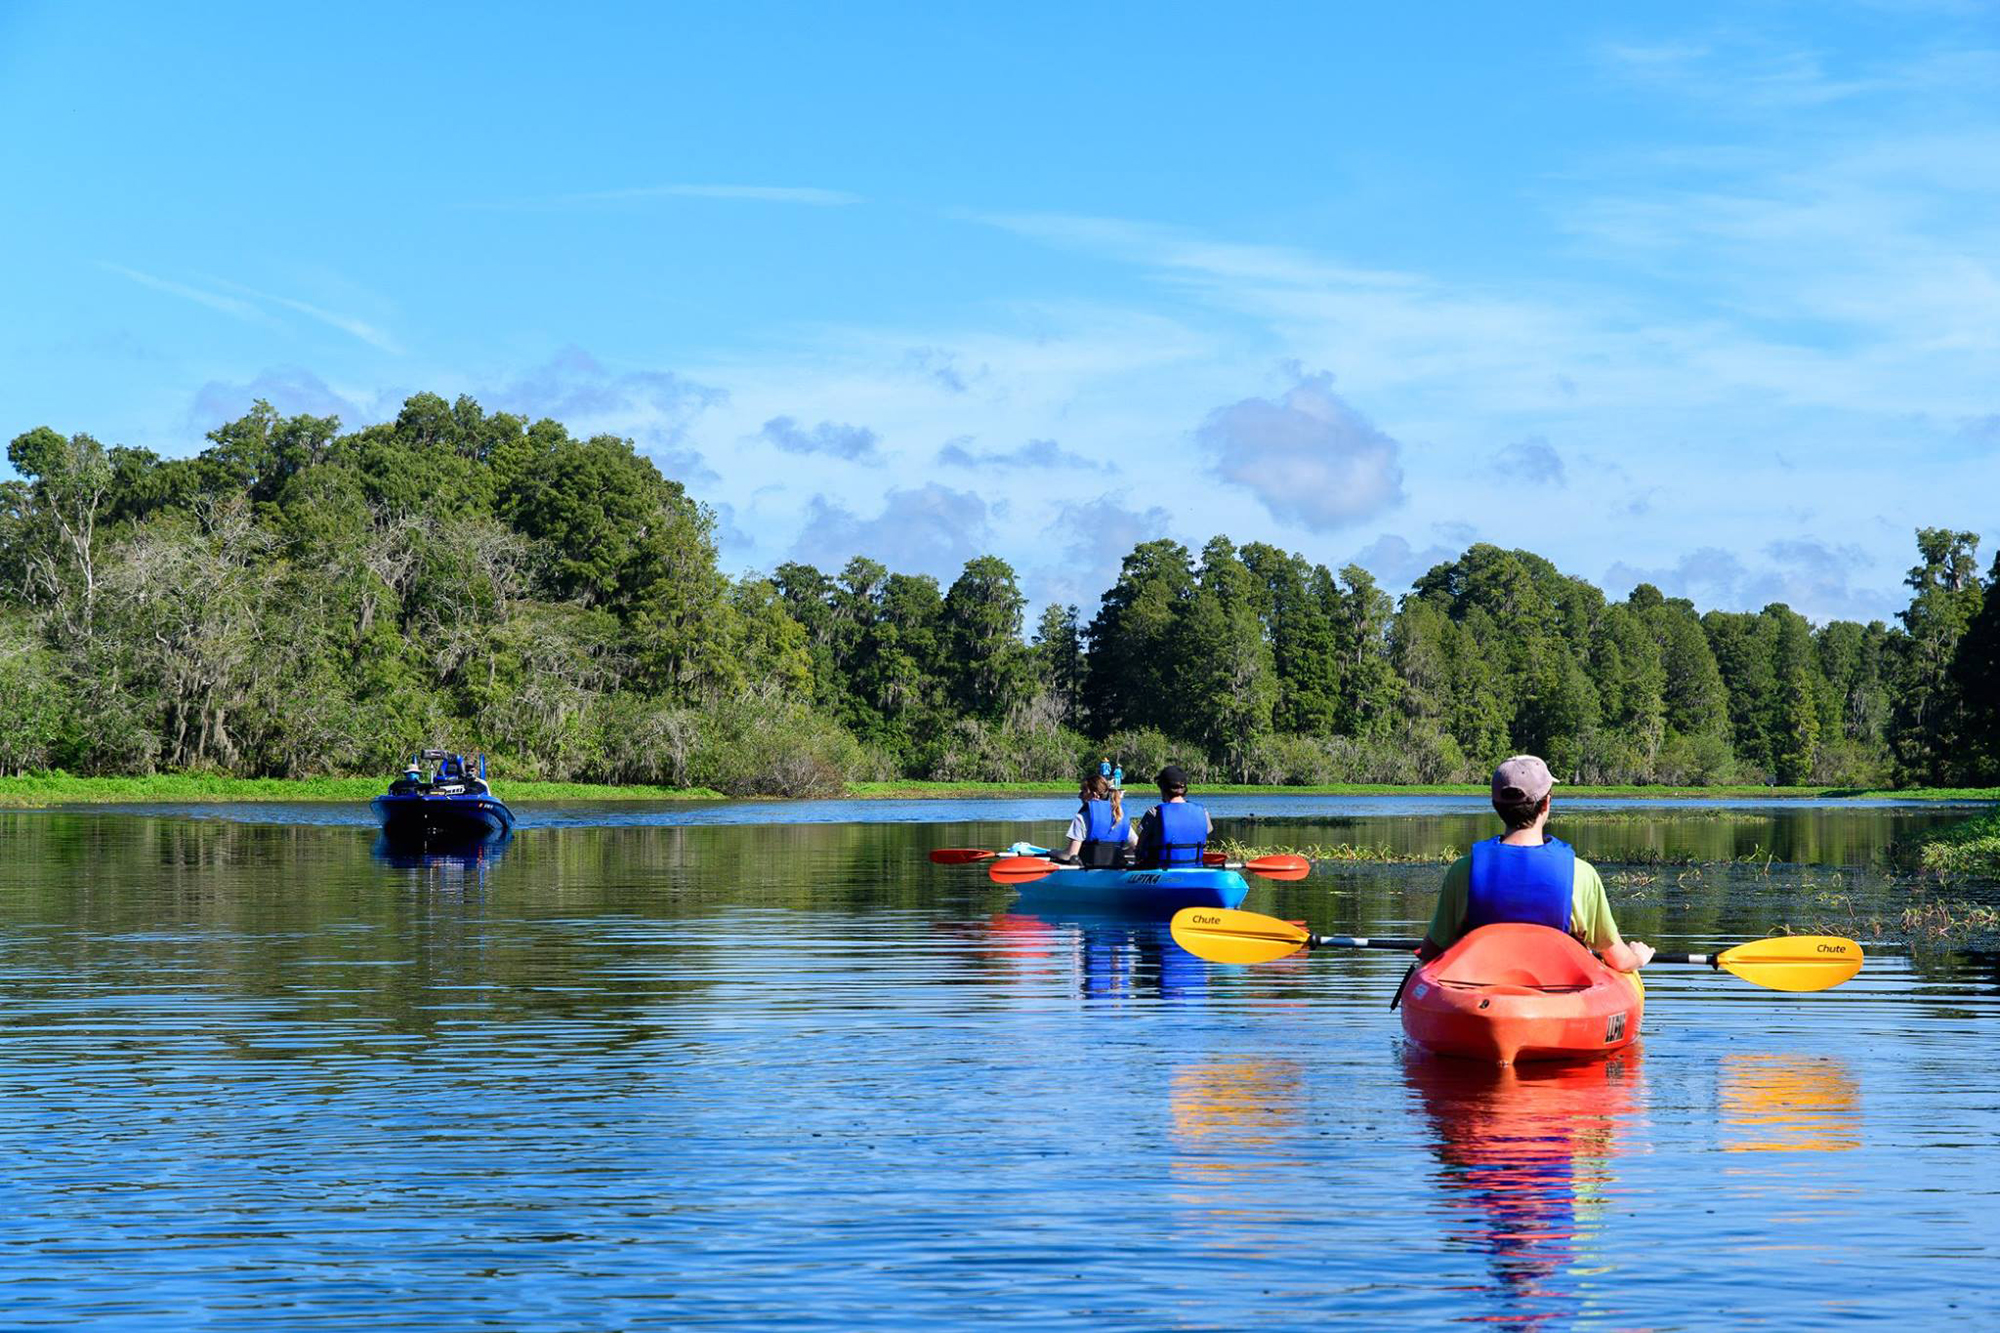 Hillsborough County - Canoeing and Kayaking in Hillsborough County